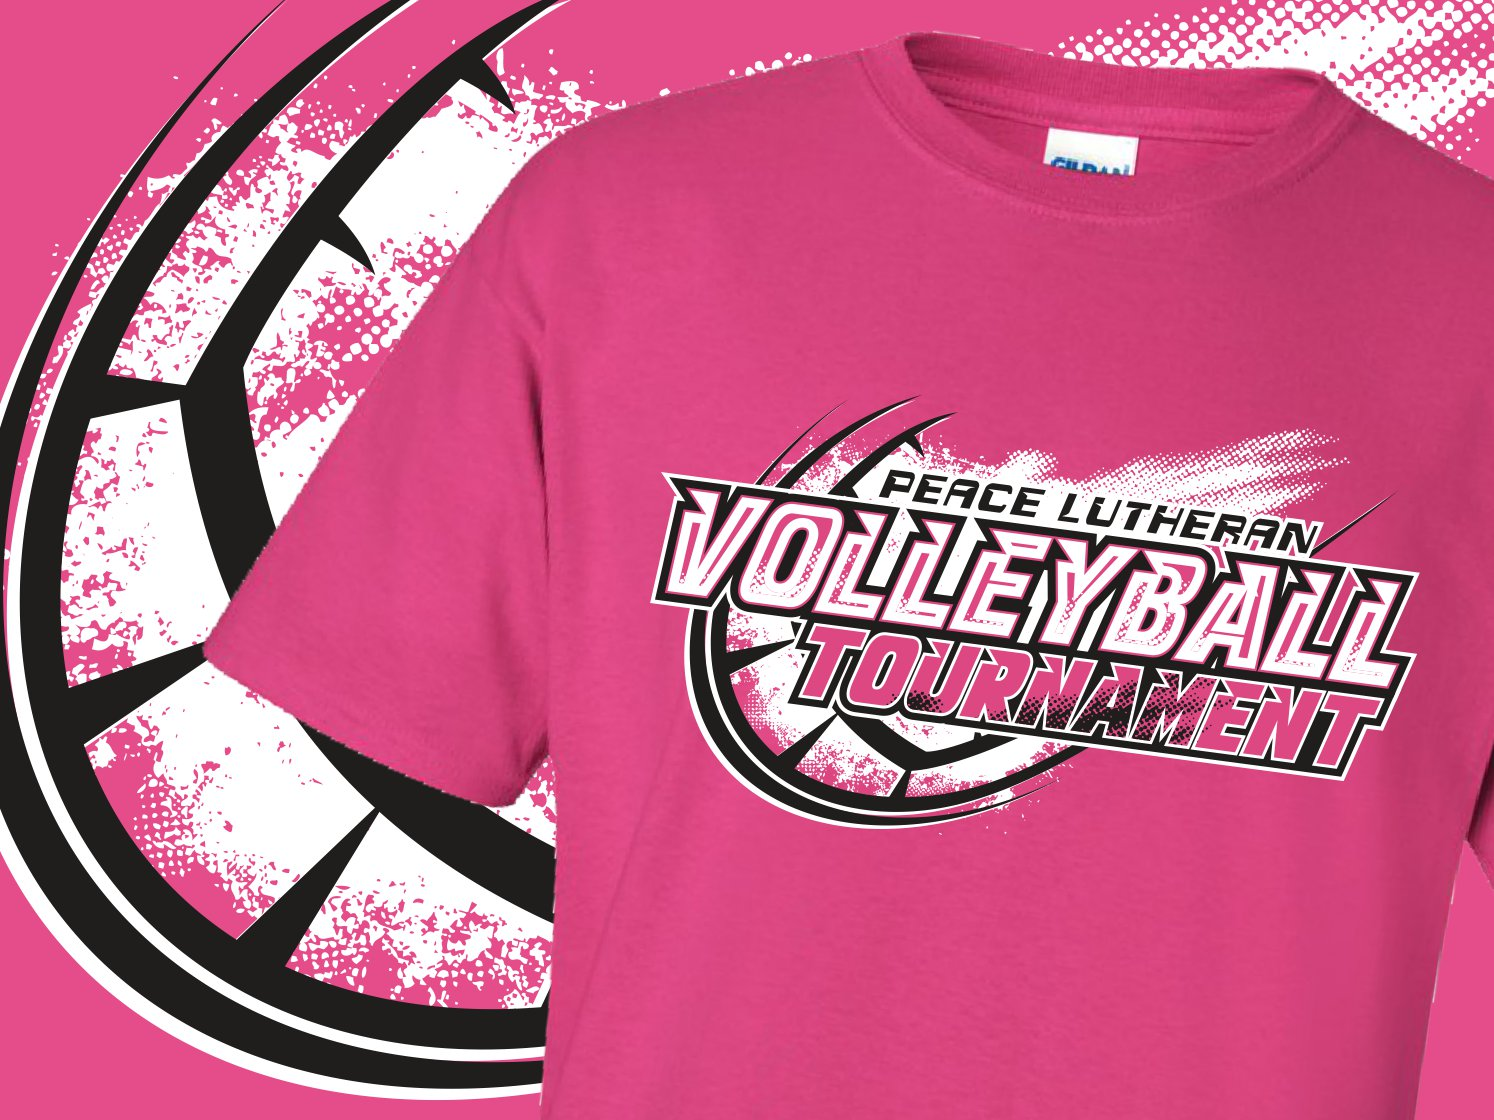 63e9d807cfb Peace Lutheran Volleyball Tournament T-Shirts